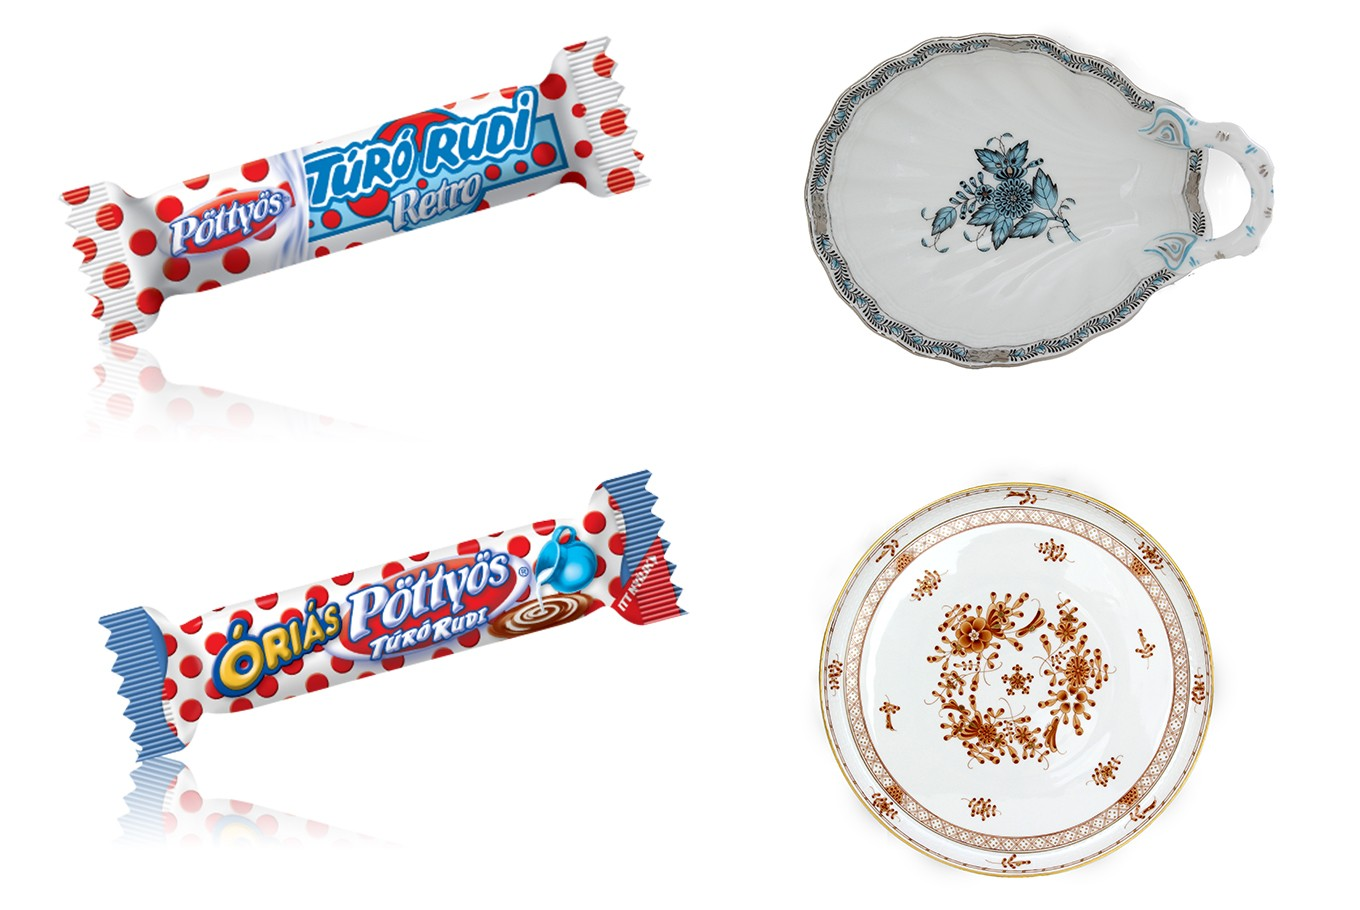 HUNGARY - Eat: A real secret tip would be the very special Hungarian sweet snack Turó Rudi (pottyos.hu), the name of a curd snack popular in Hungary since 1968. The bar is composed of a thin chocolate-flavored outer coating and an inner filling of túró, or curds. <br><br> Buy: The delicate hand-painted porcelains of Herendi (herend.com) or Zsolnay (zsolnay.hu), or some pieces with the beautiful Hungarian kalocsai embroidery. If you are up for some modern Hungarian handicrafts and designer pieces, check out Design Terminal (designterminal.org) or the Wamp design fair (wamp.hu/en), where you'll find one-of-a-kind designer pieces with a special Hungarian touch. (Judit Németh-Pach, Ambassador of Hungary)